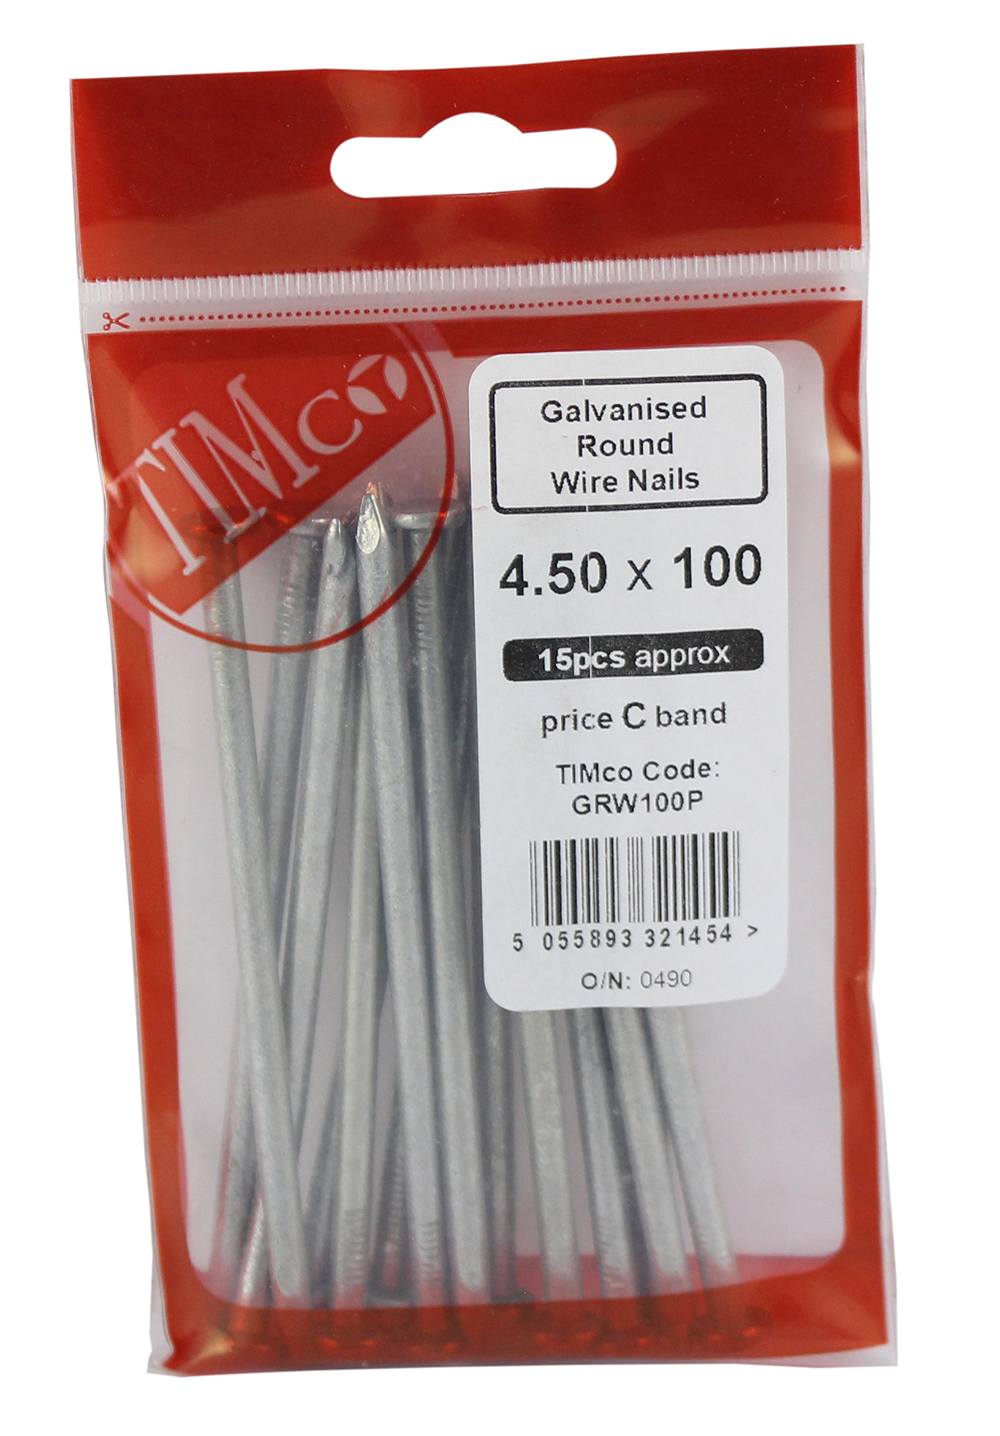 TIMco 100 x 4.50 Galvanised Round Wire Nails Bag Of 15